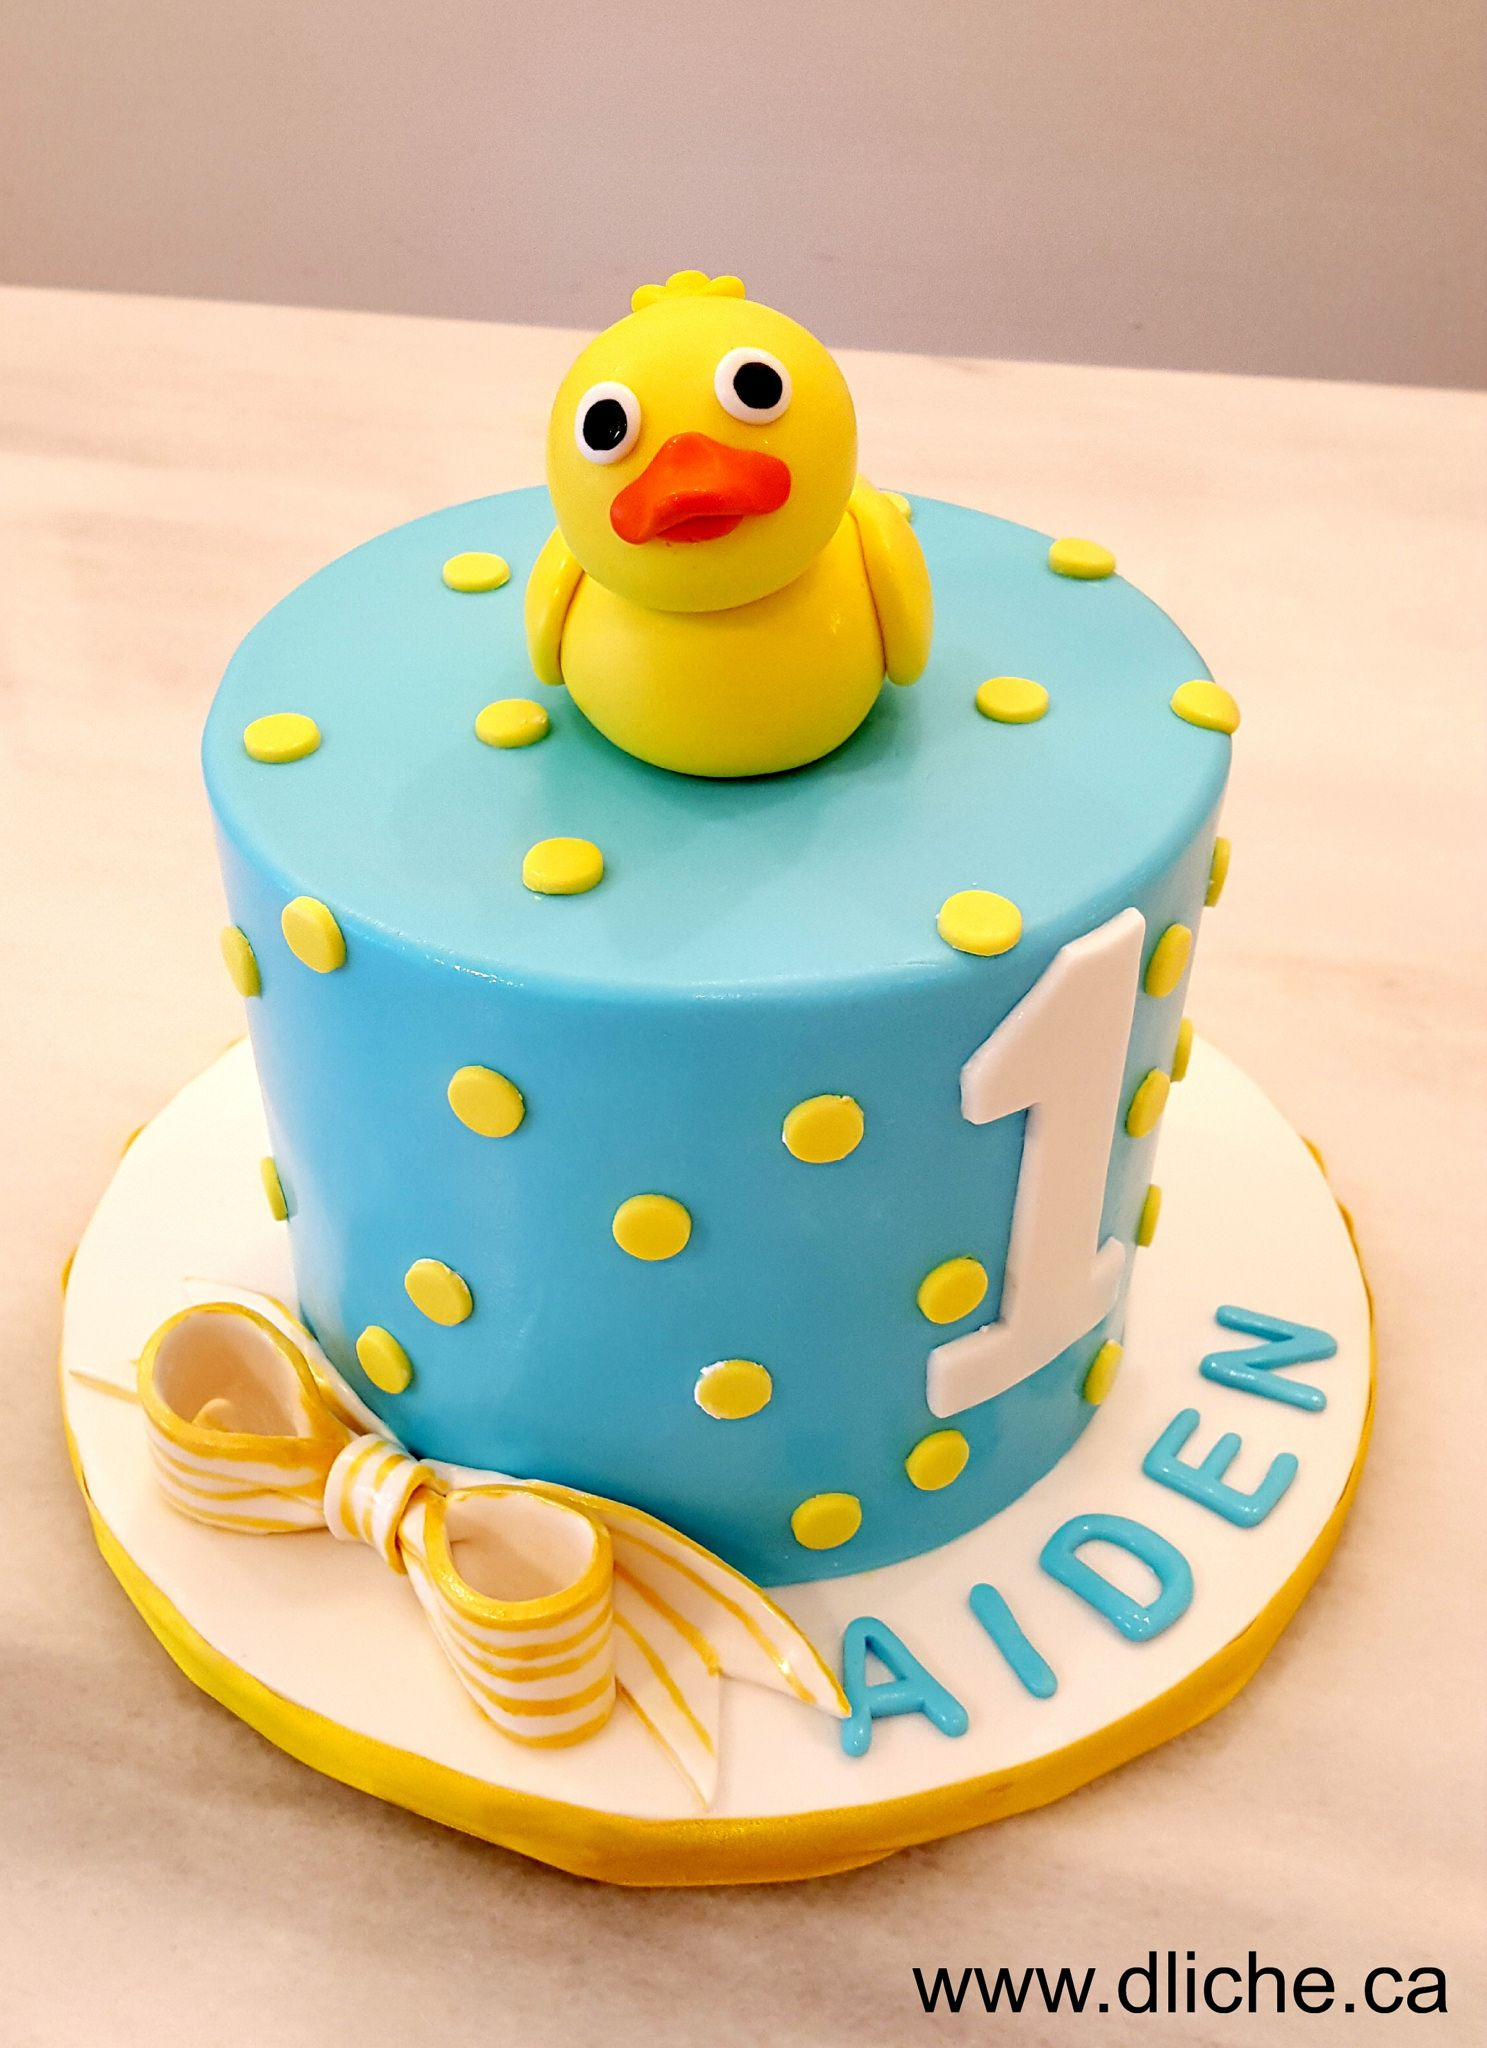 Rubber Ducky Cake With Images Cake Duck Cake Rubber Ducky Cake